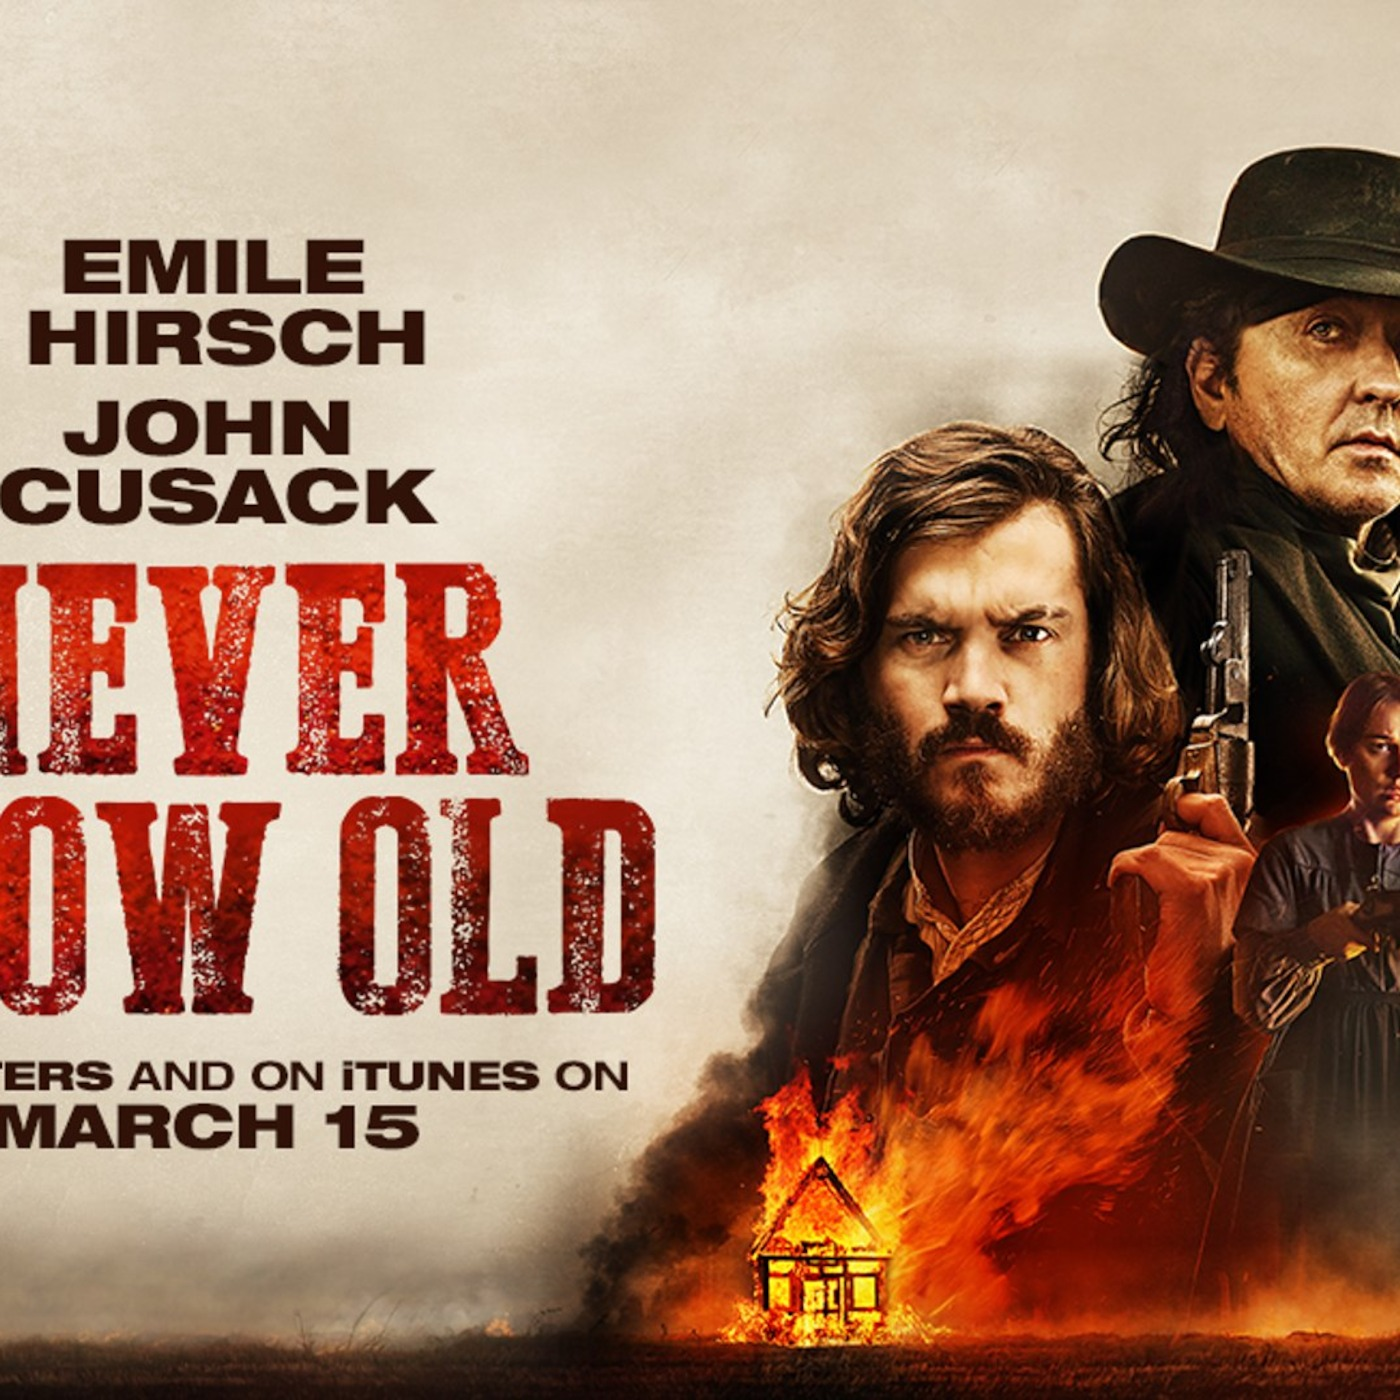 Download Never Grow Old 2019 movies counter